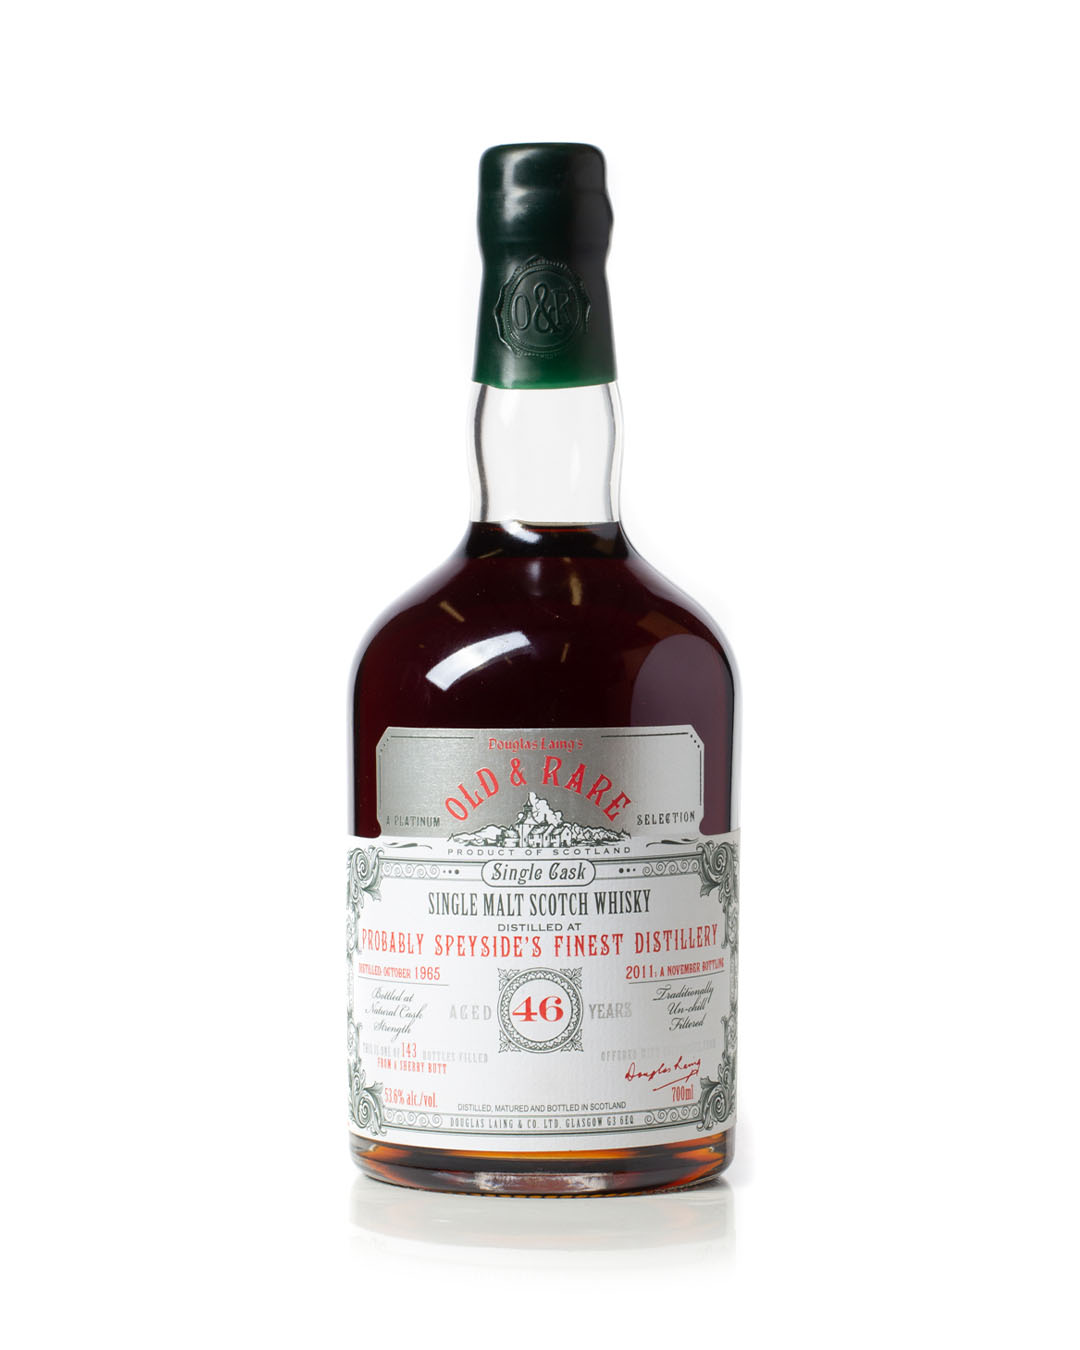 Probably Speyside's Finest Distillery 1965 46 year old